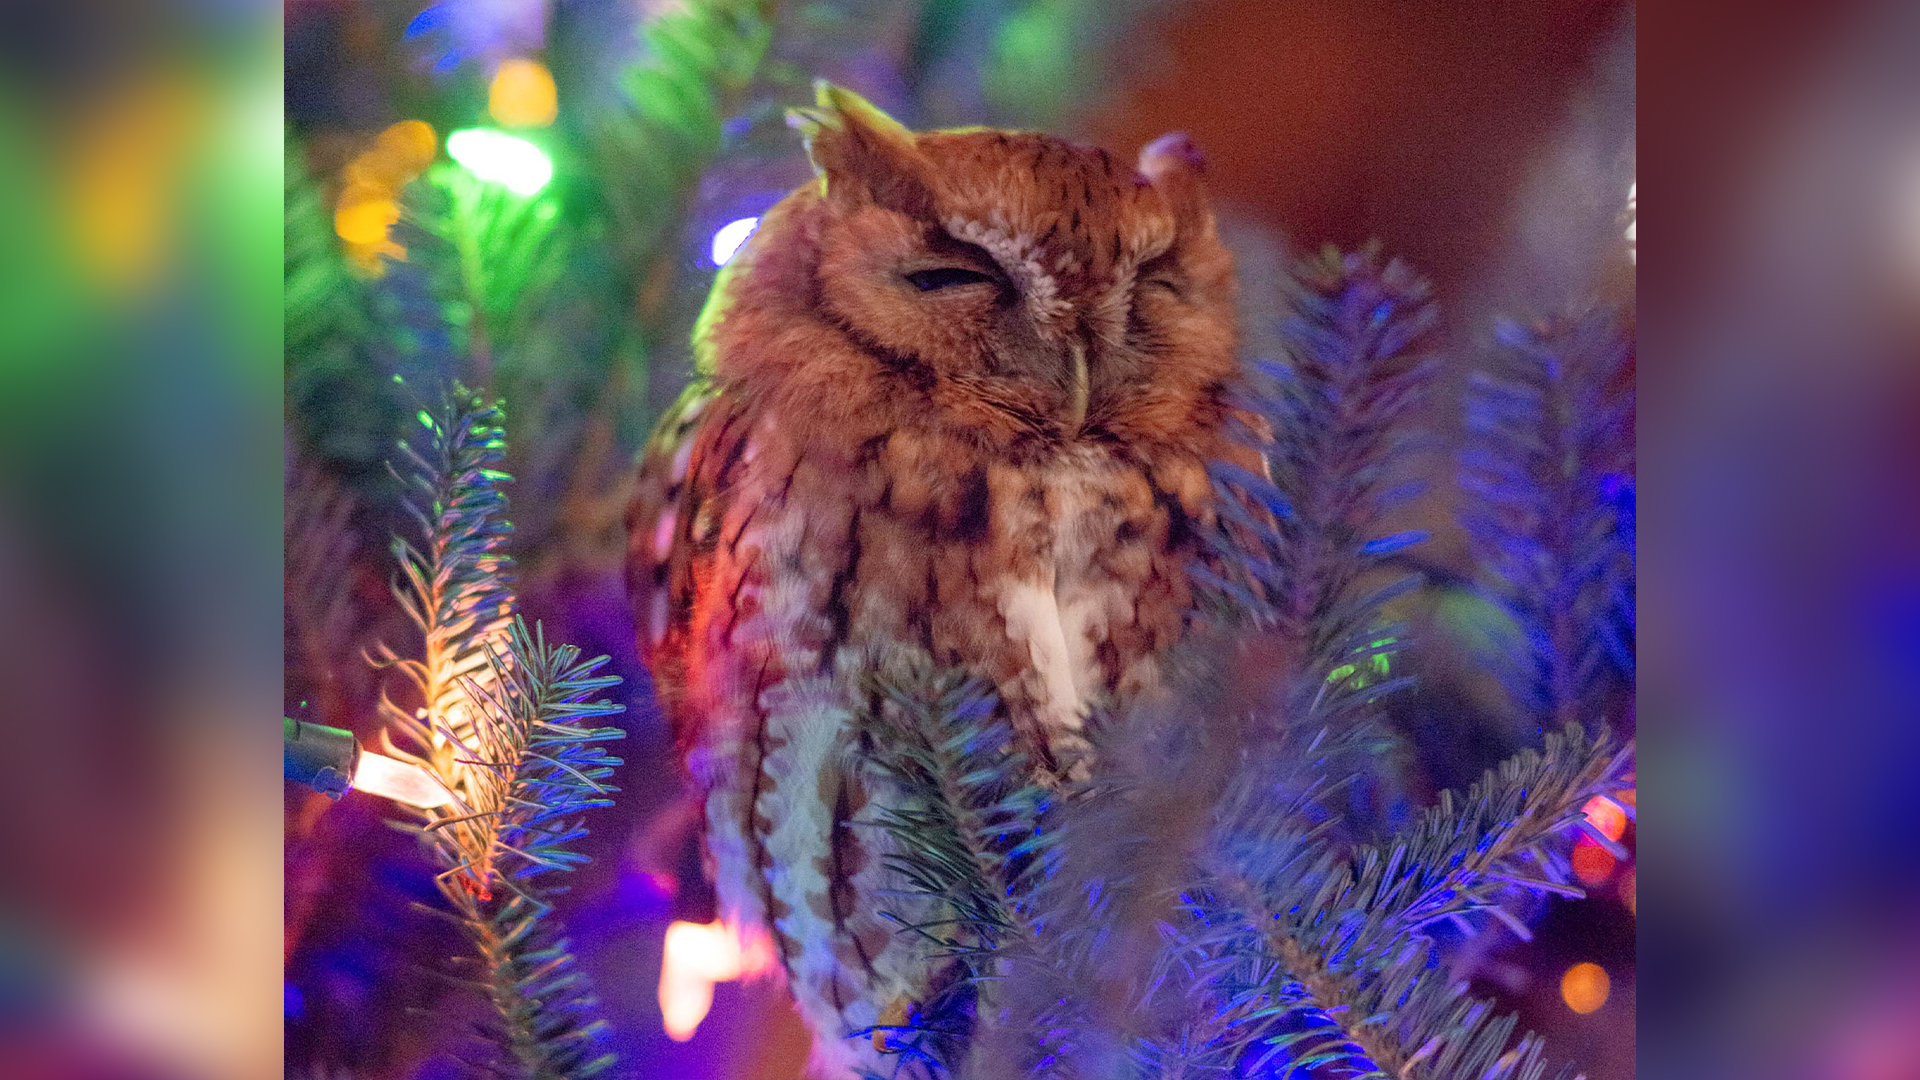 This photo provided by Billy Newman Photography shows an owl nestled in a Christmas tree that belongs to Katie McBride Newman in Newnan, Ga. Newman said Friday, Dec. 20, 2019, that she and her daughter spotted the bird on Dec. 12.